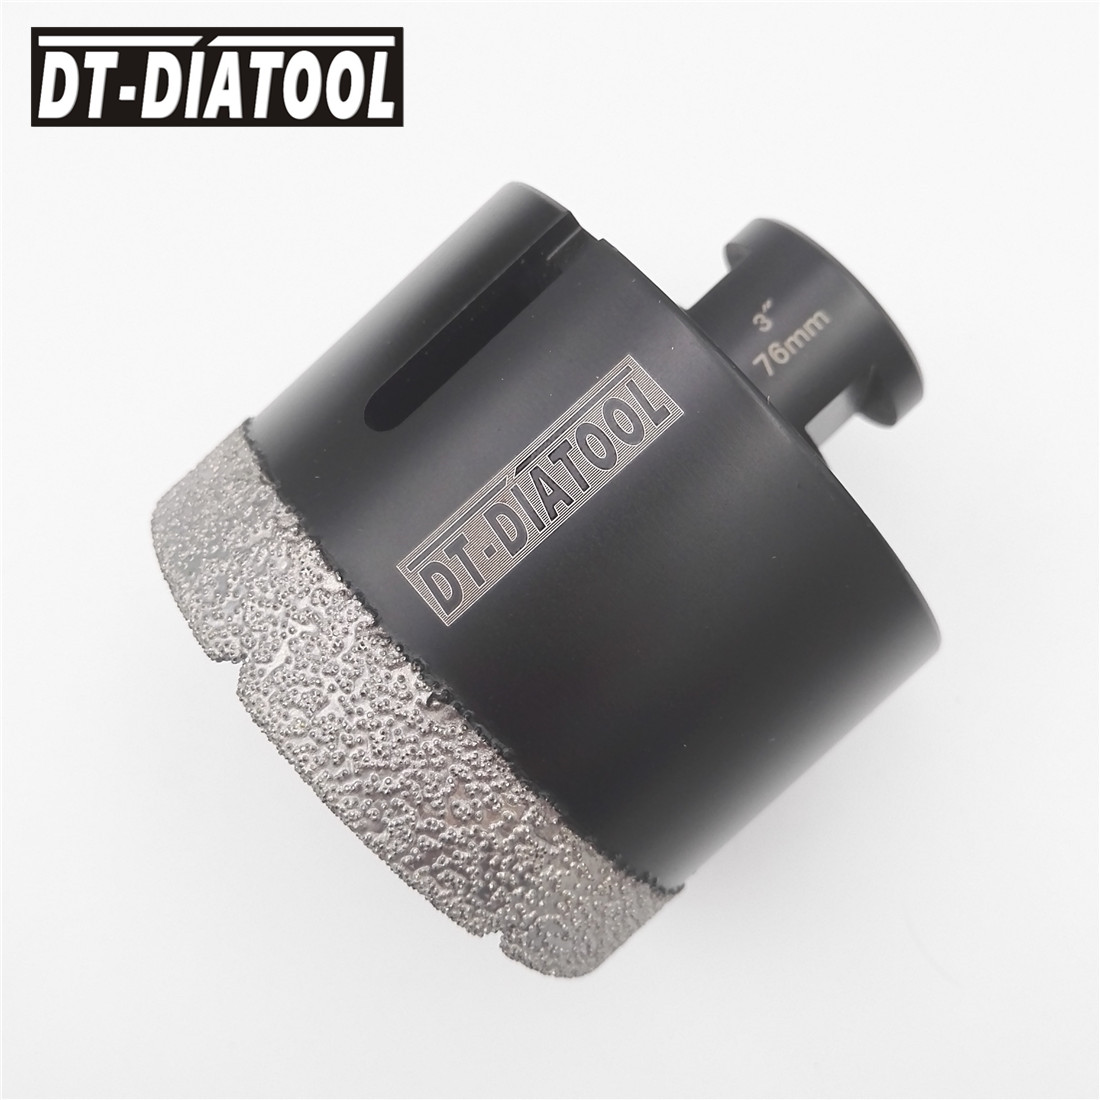 Diameter 3 76MM Vacuum brazed diamond Dry drilling bits5/8-11 thread Hole saw Drill core bits for ceramic tile marble granite hole saw 2diamond core drill bits for drilling for stone and concrete dry drill bit